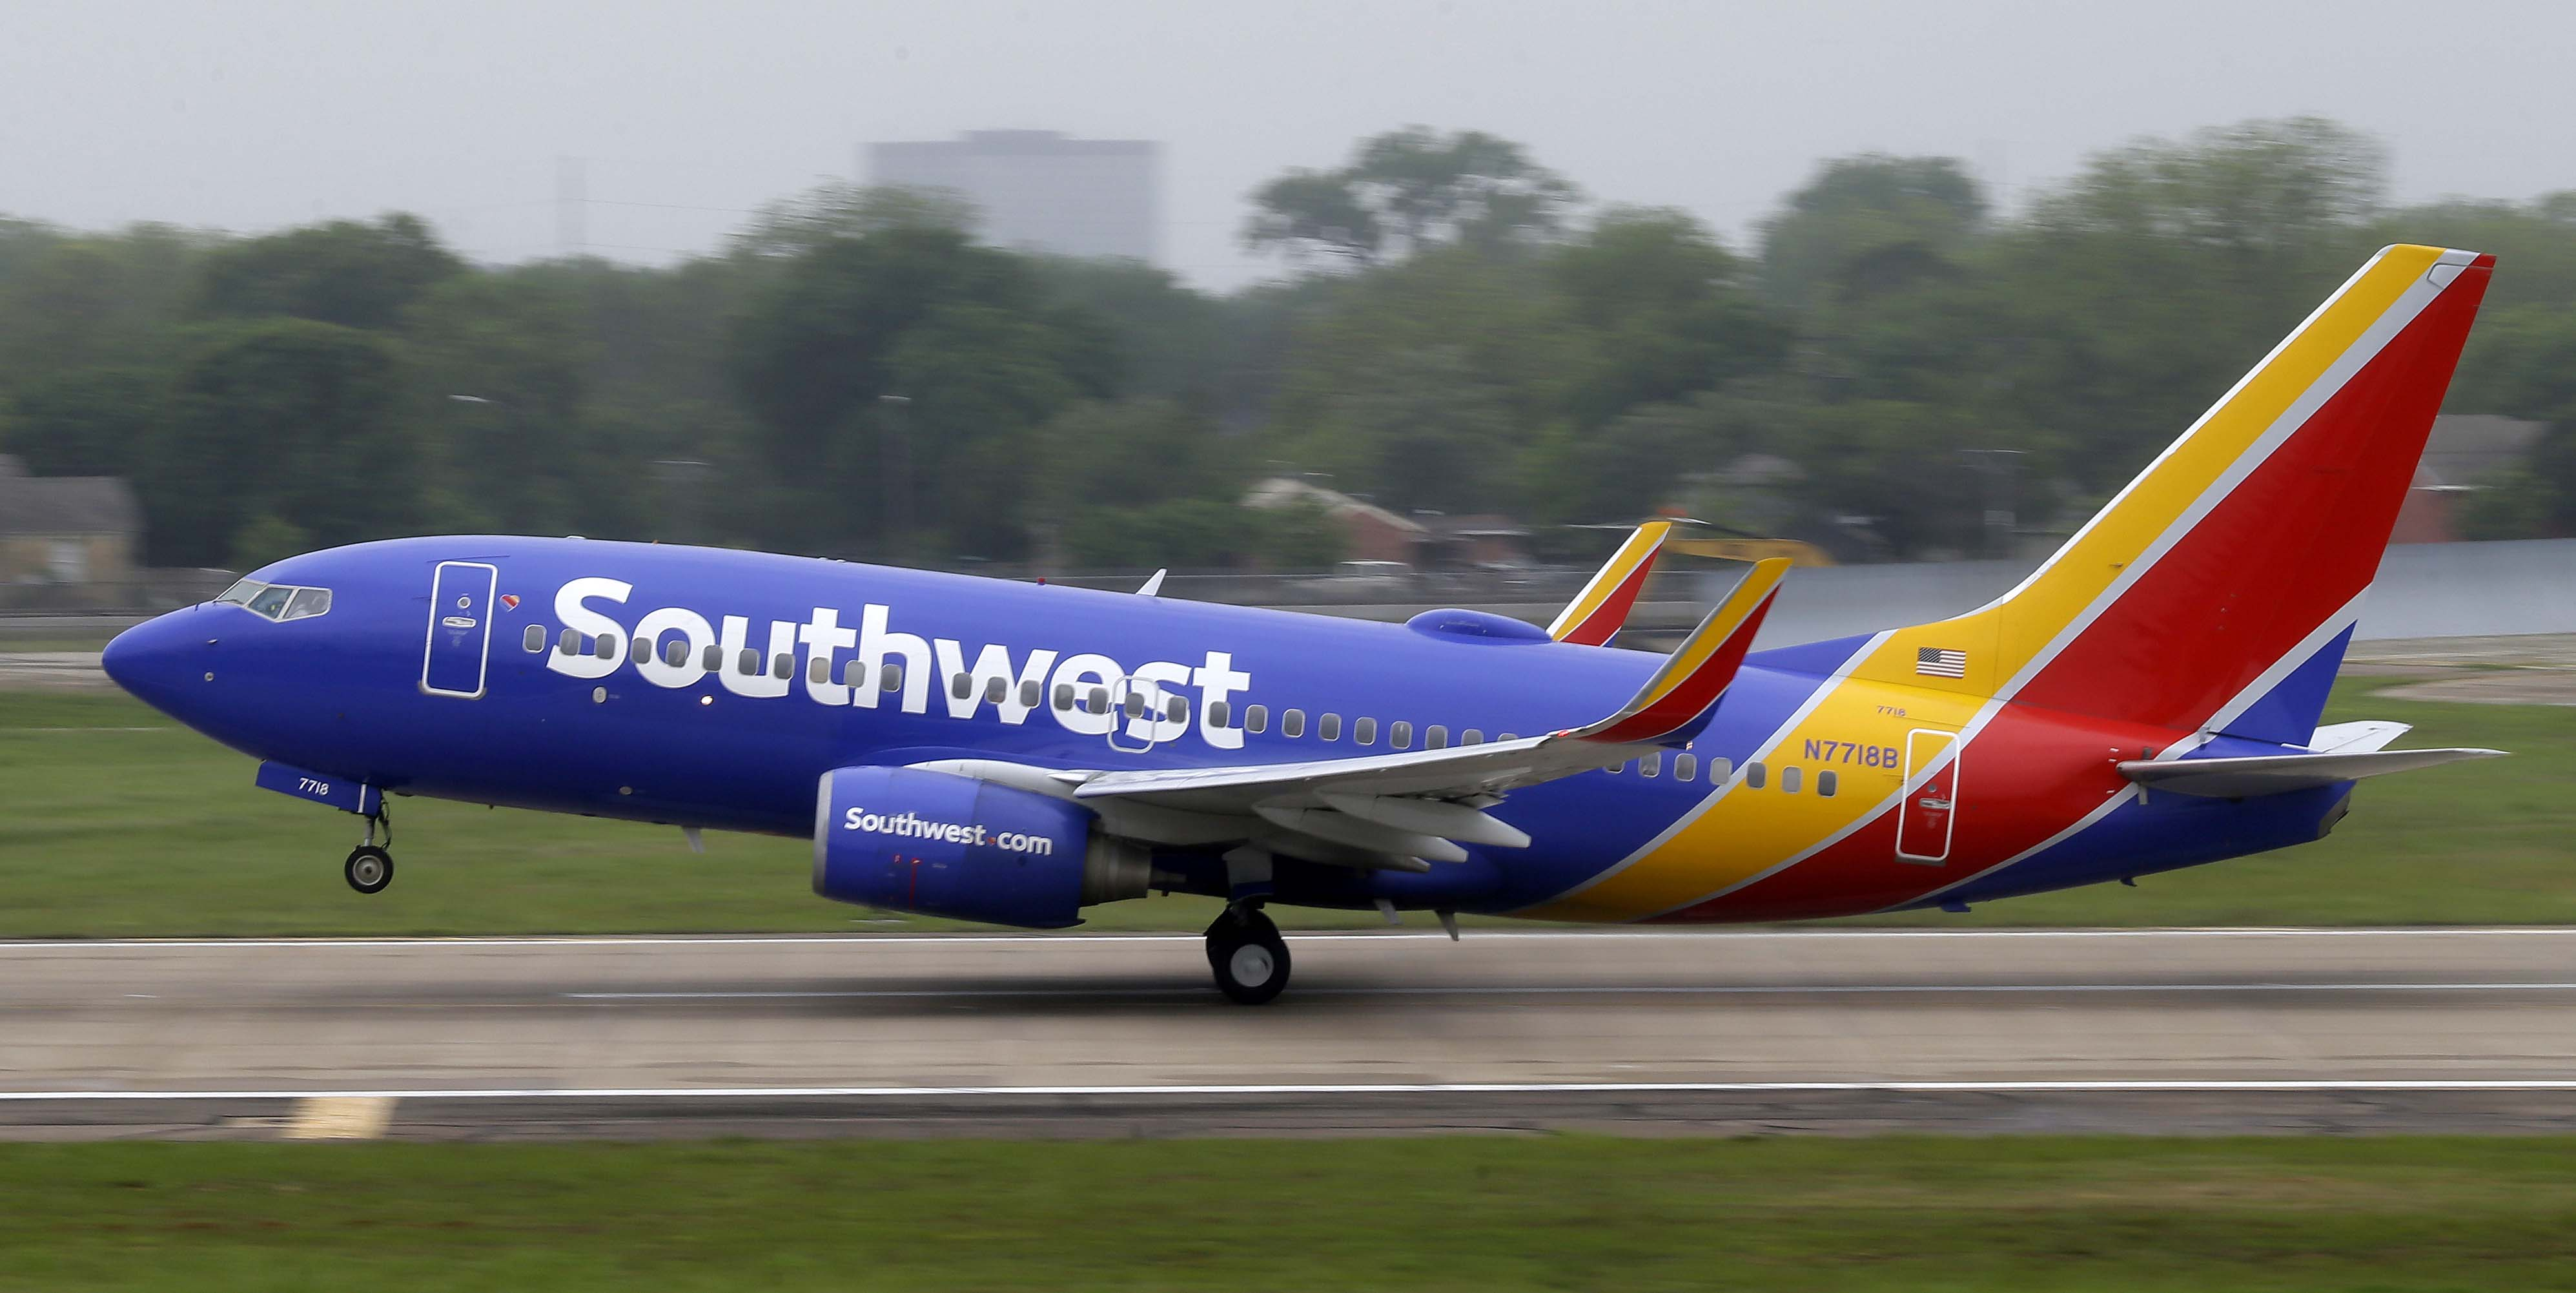 Southwest Airlines flights grounded after technology glitches